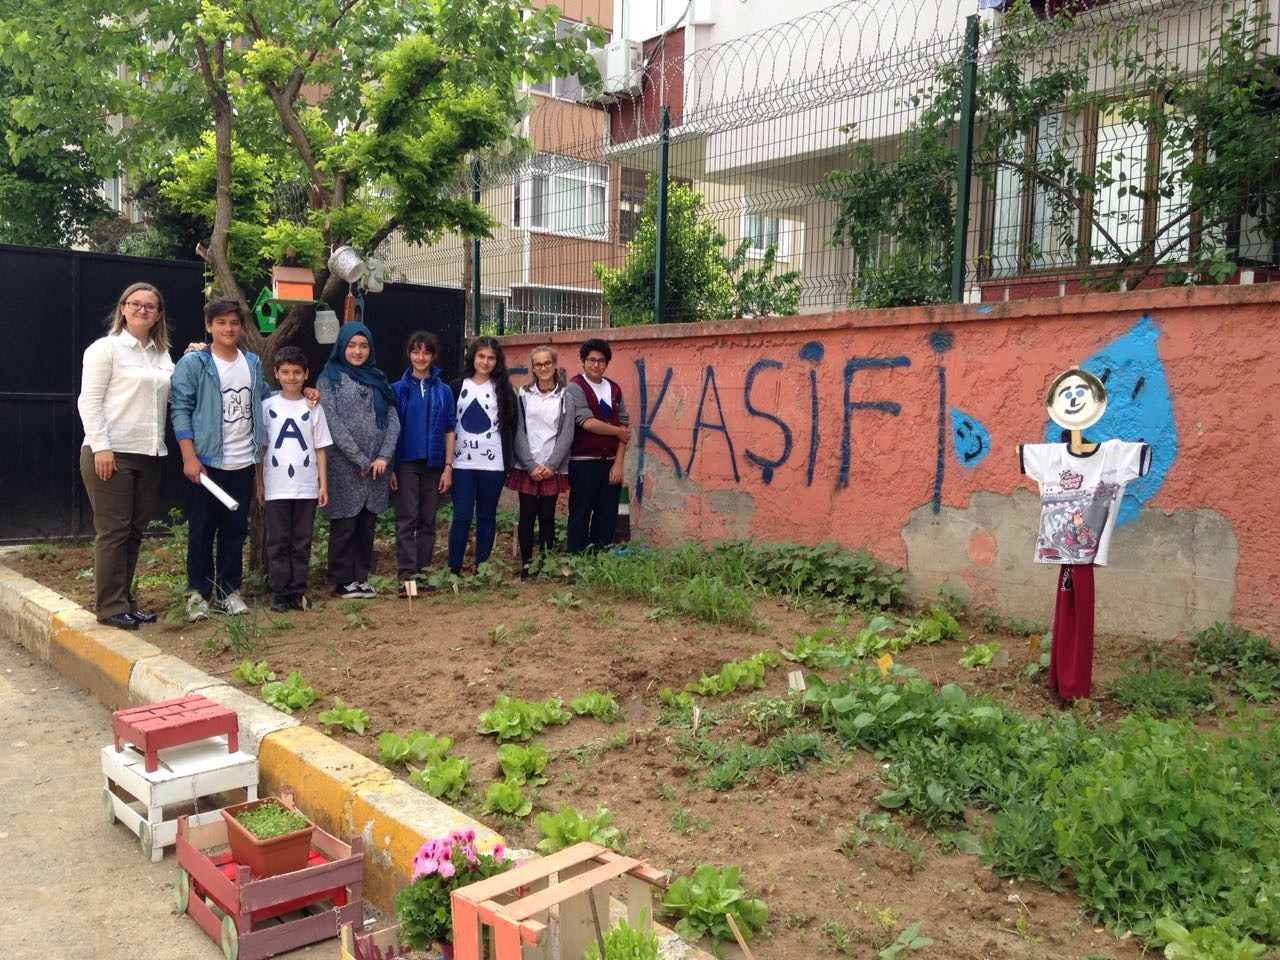 The students in their garden